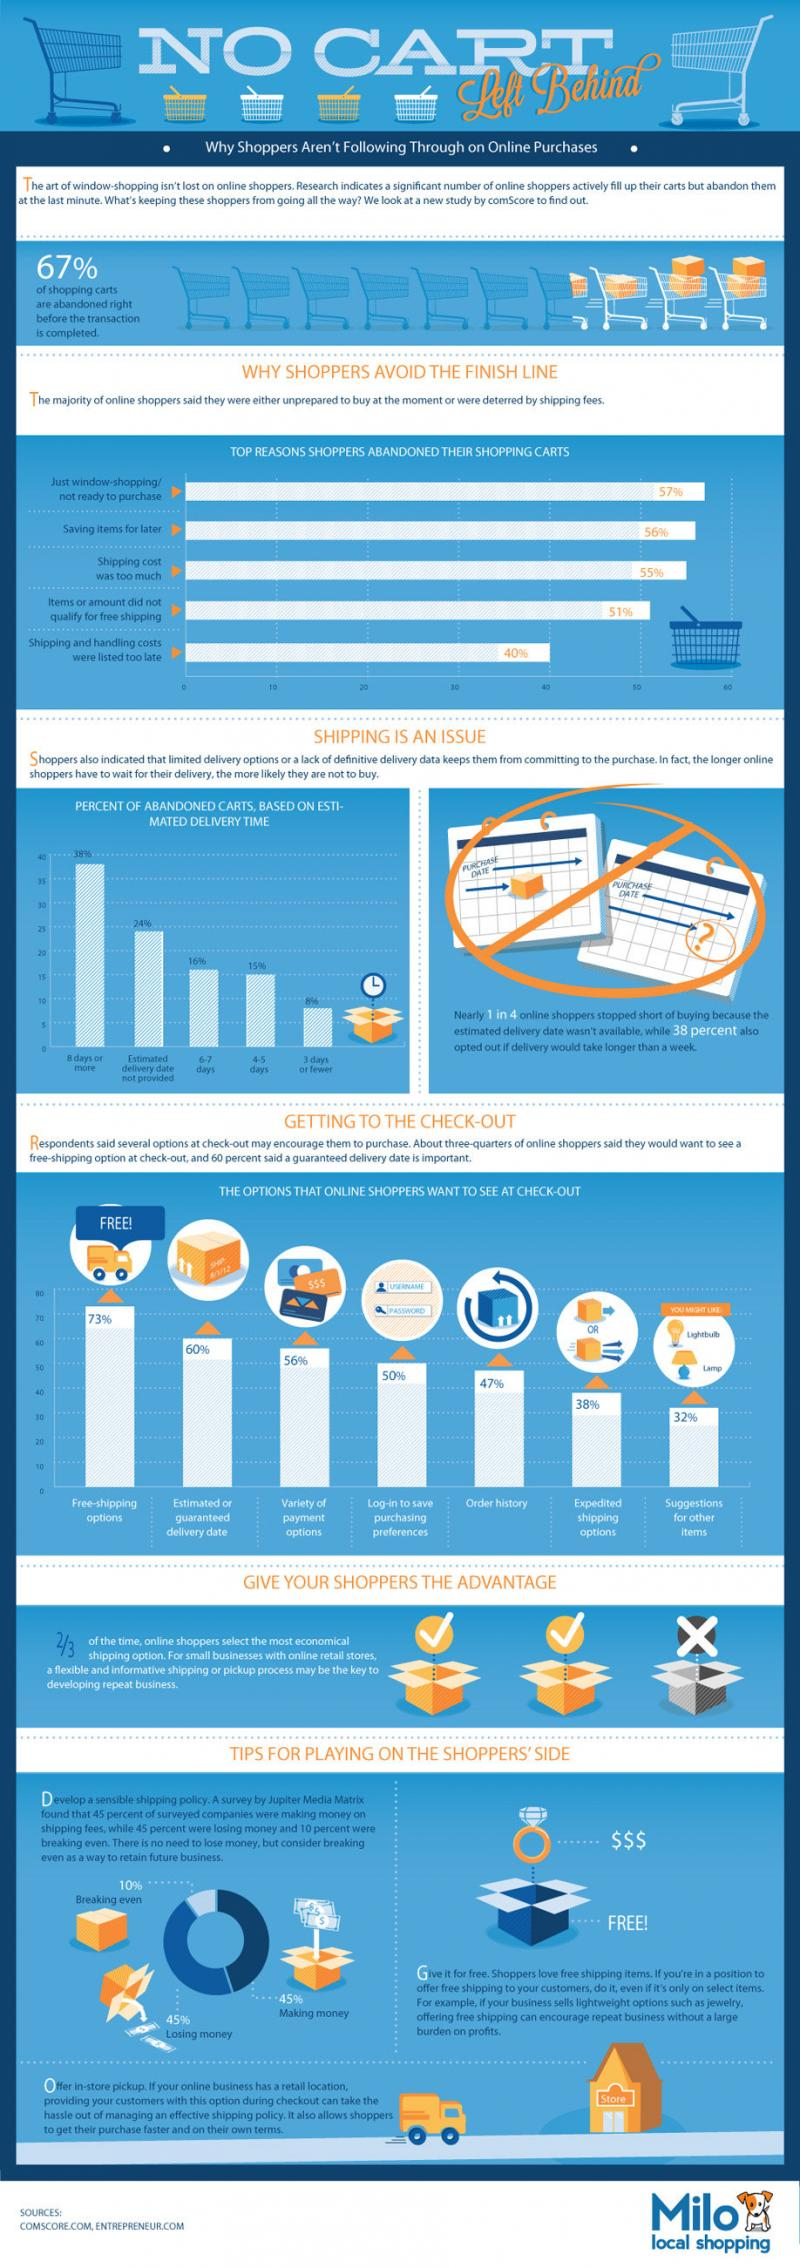 Why shoppers aren't following through on online purchase #ecommerce #infographic